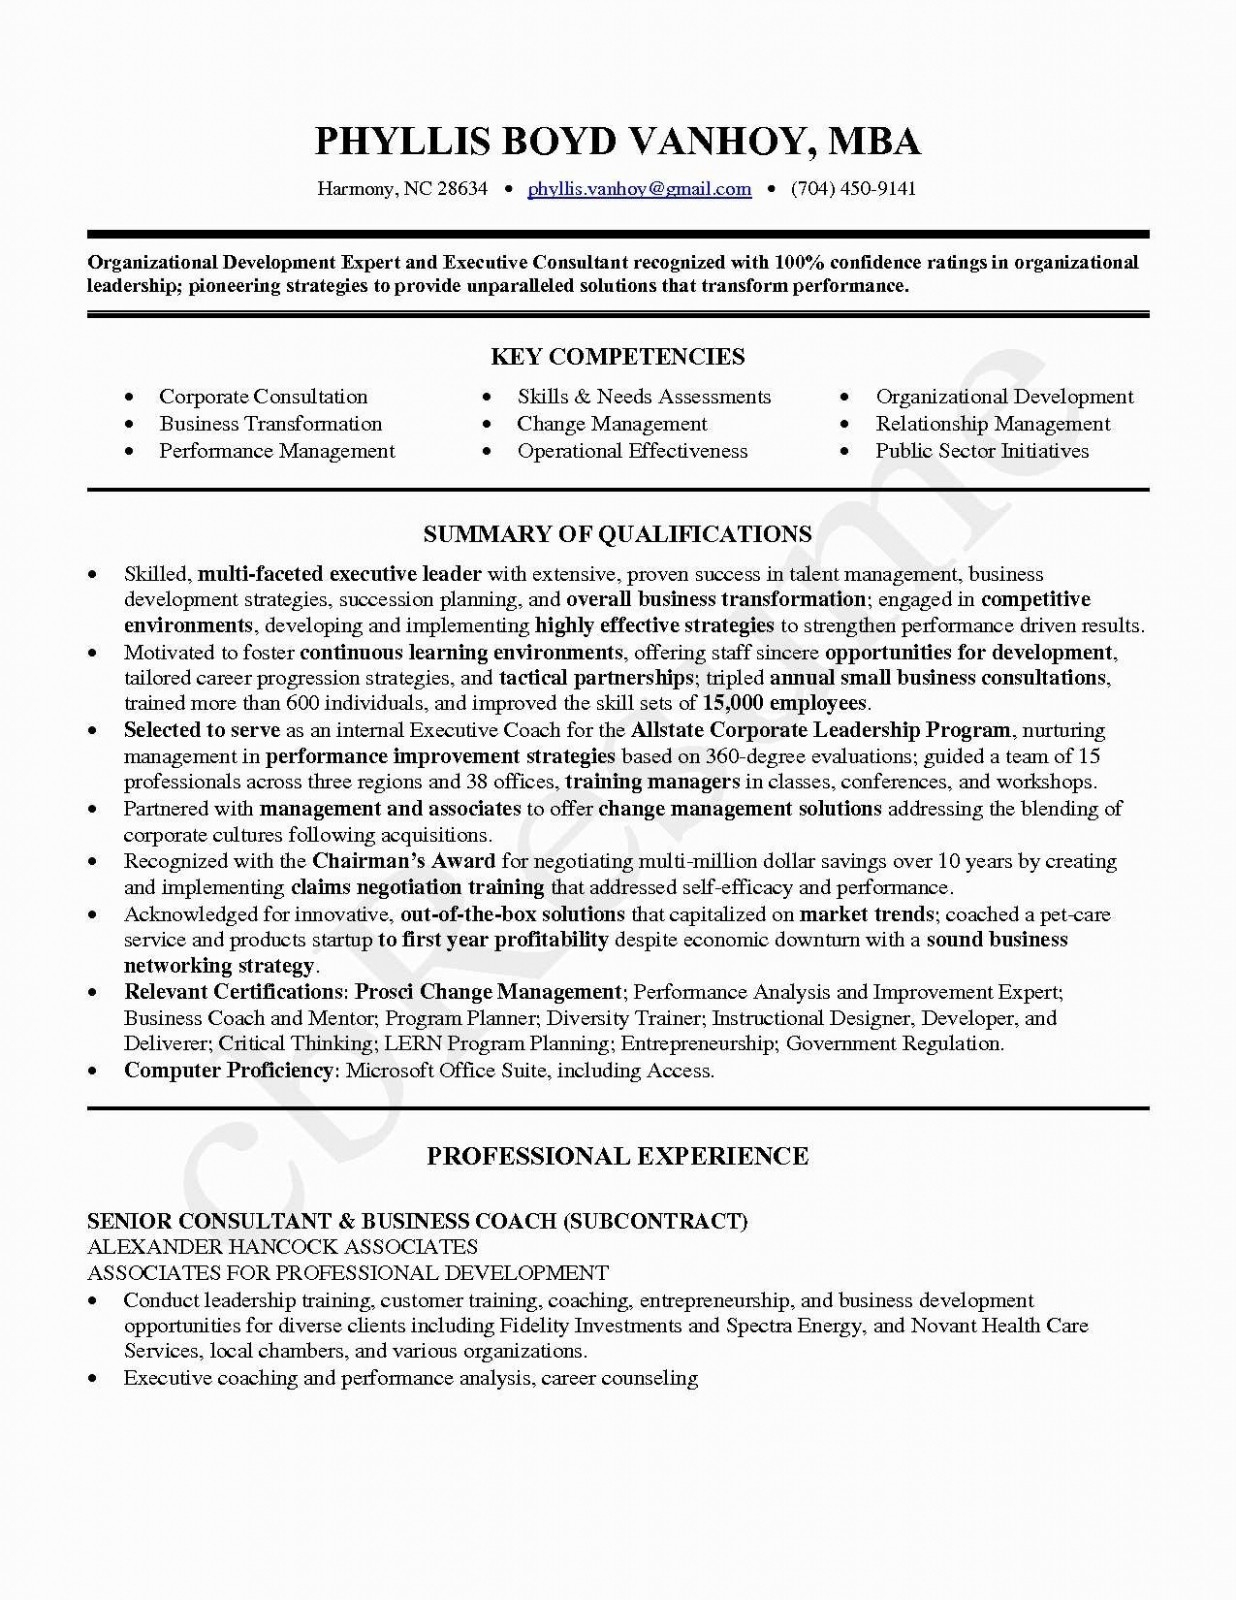 Resume Samples for Career Changers - Business Resume Refrence Career Change Resume Template Unique